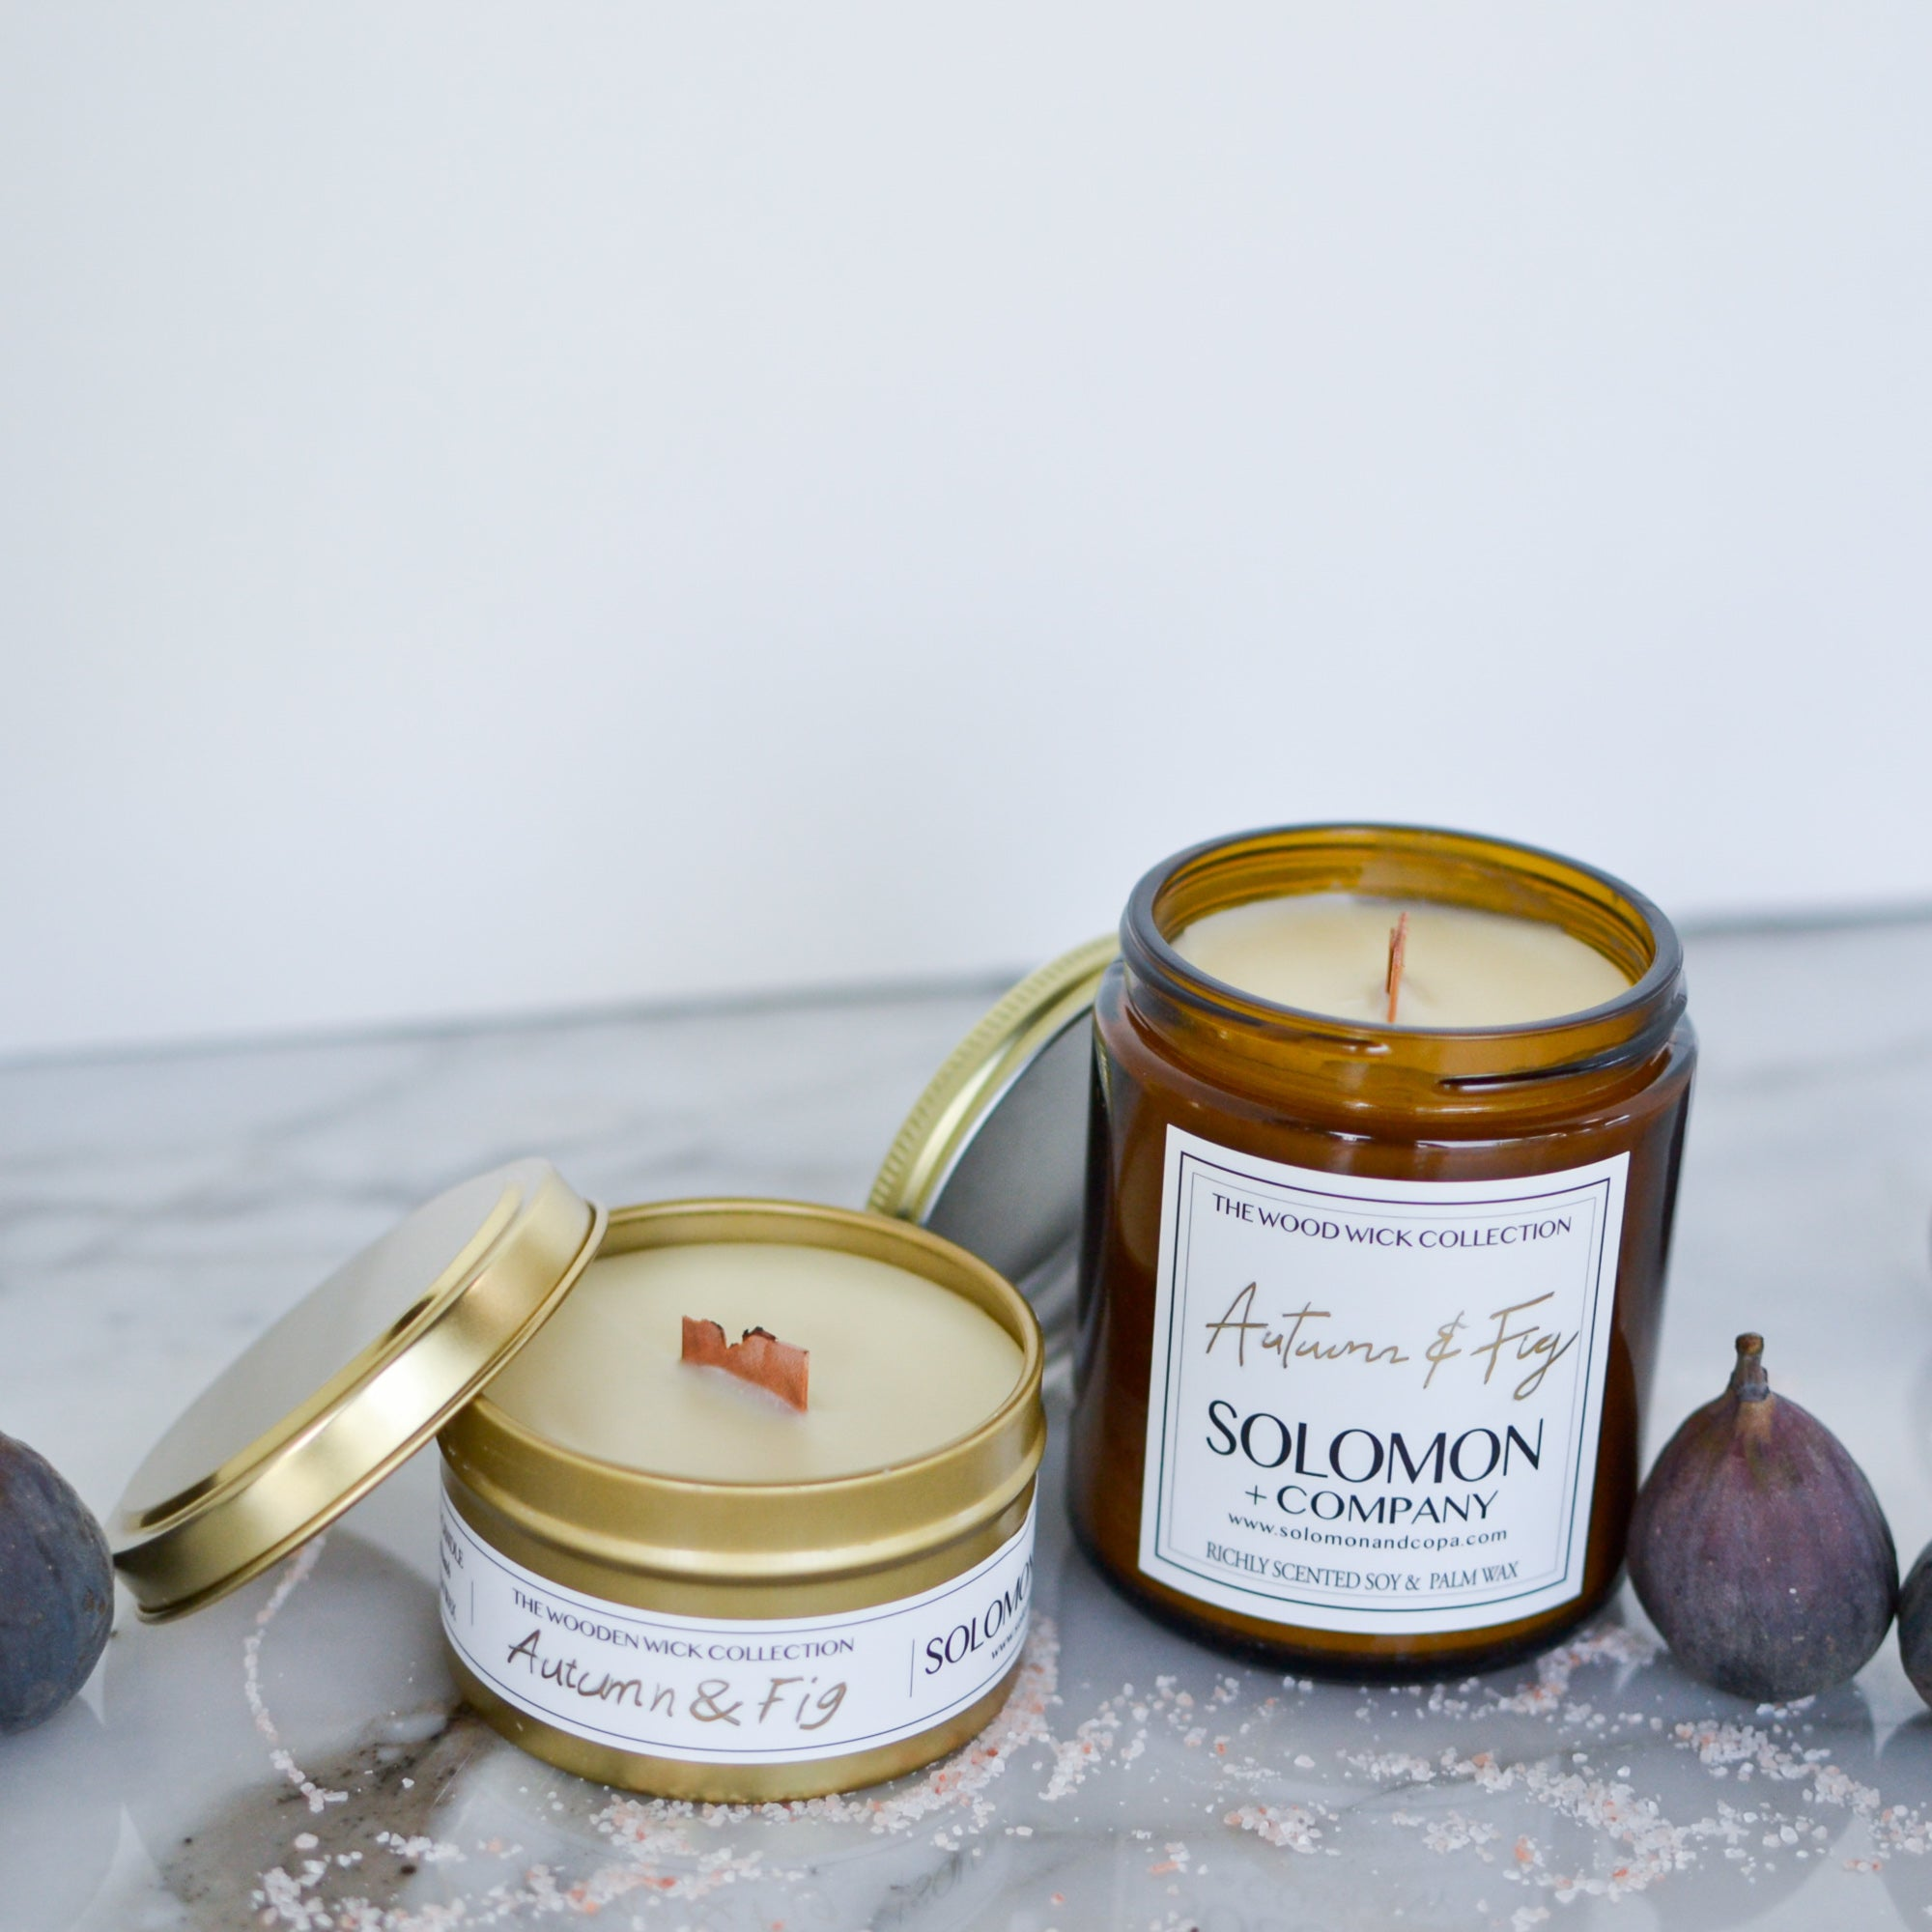 Autumn and Fig Candle Collection